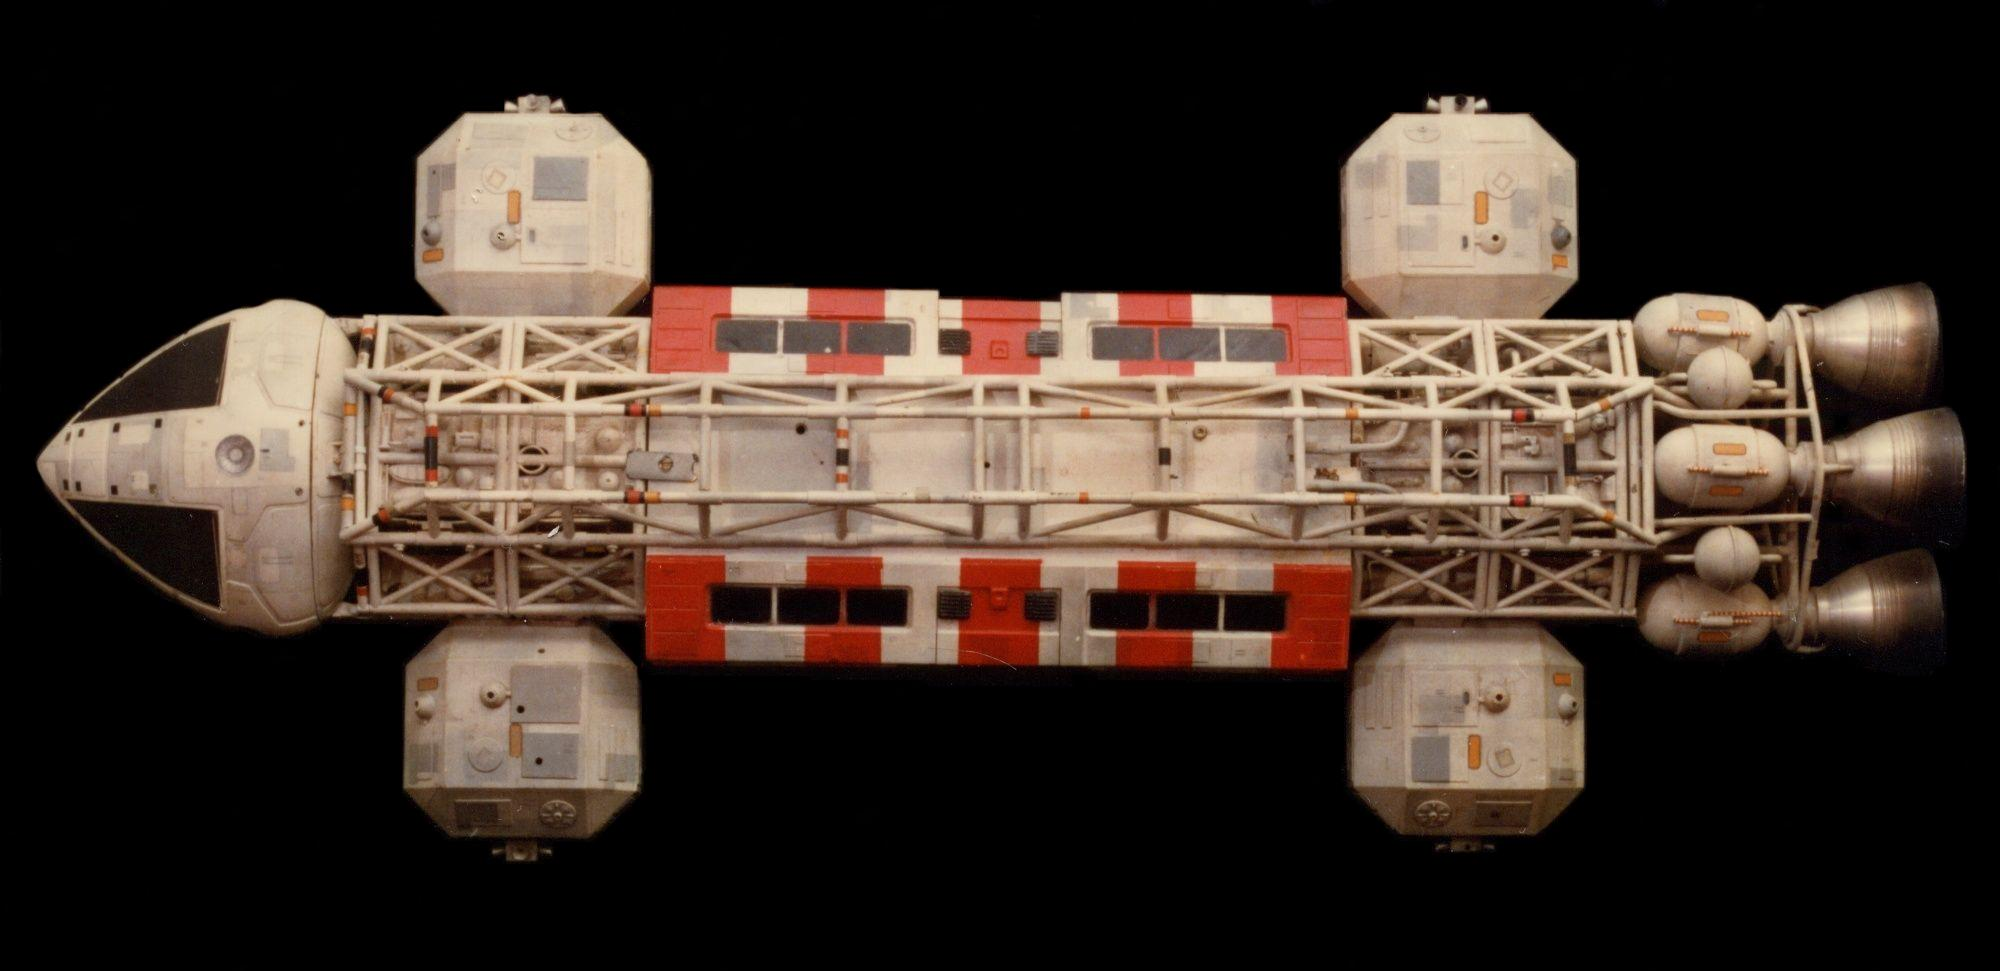 Space 1999 Catacombs Eagle 1 Images